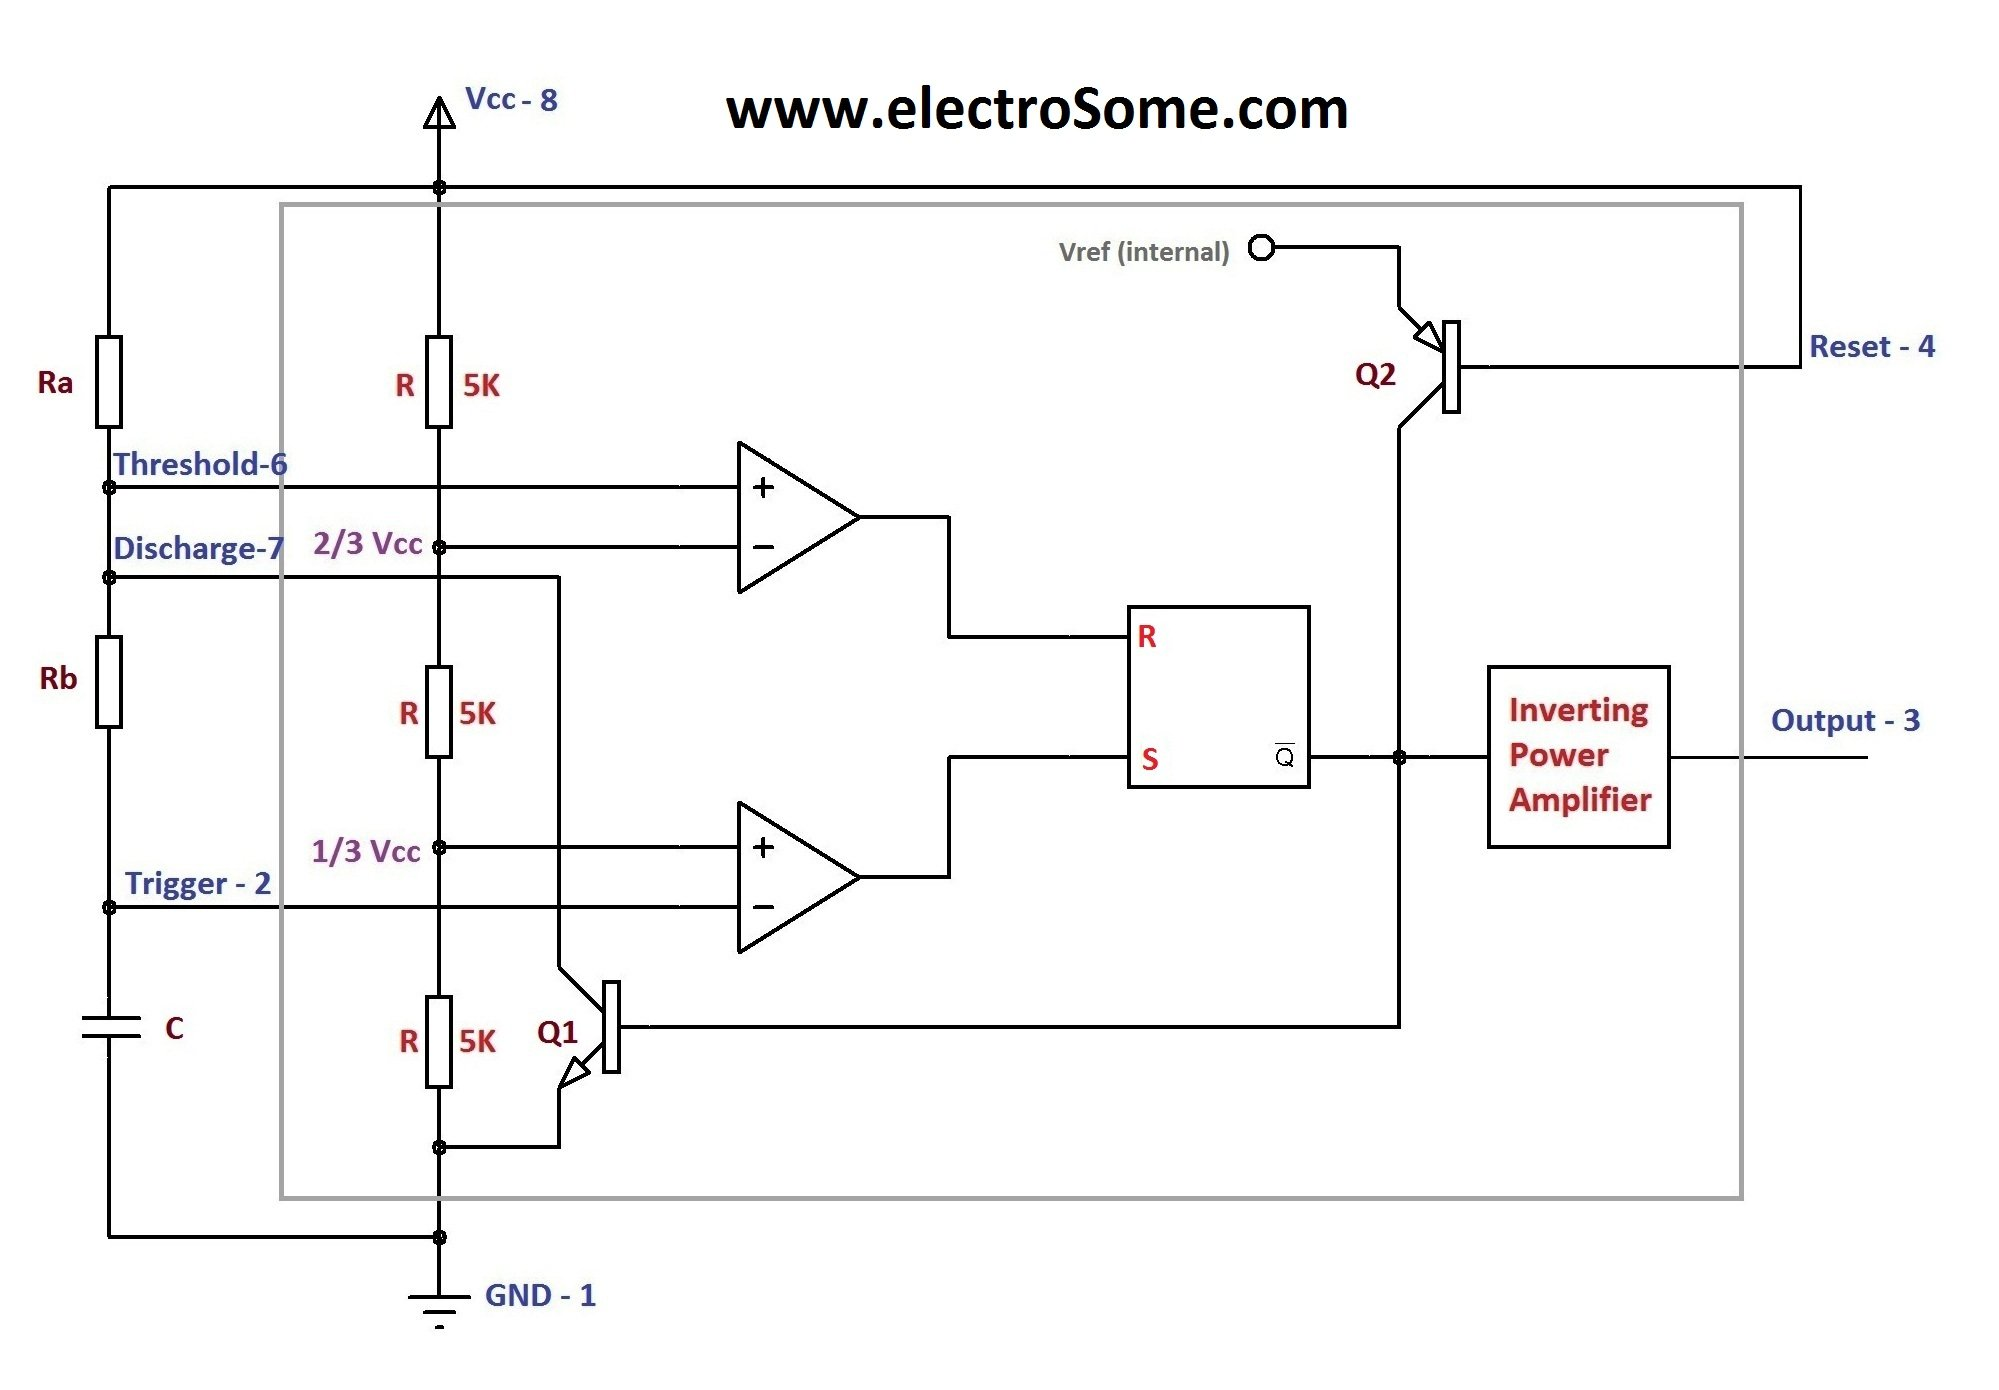 astable multivibrator using 555 timer rh electrosome com ic 555 internal diagram 555 Pinout Diagram